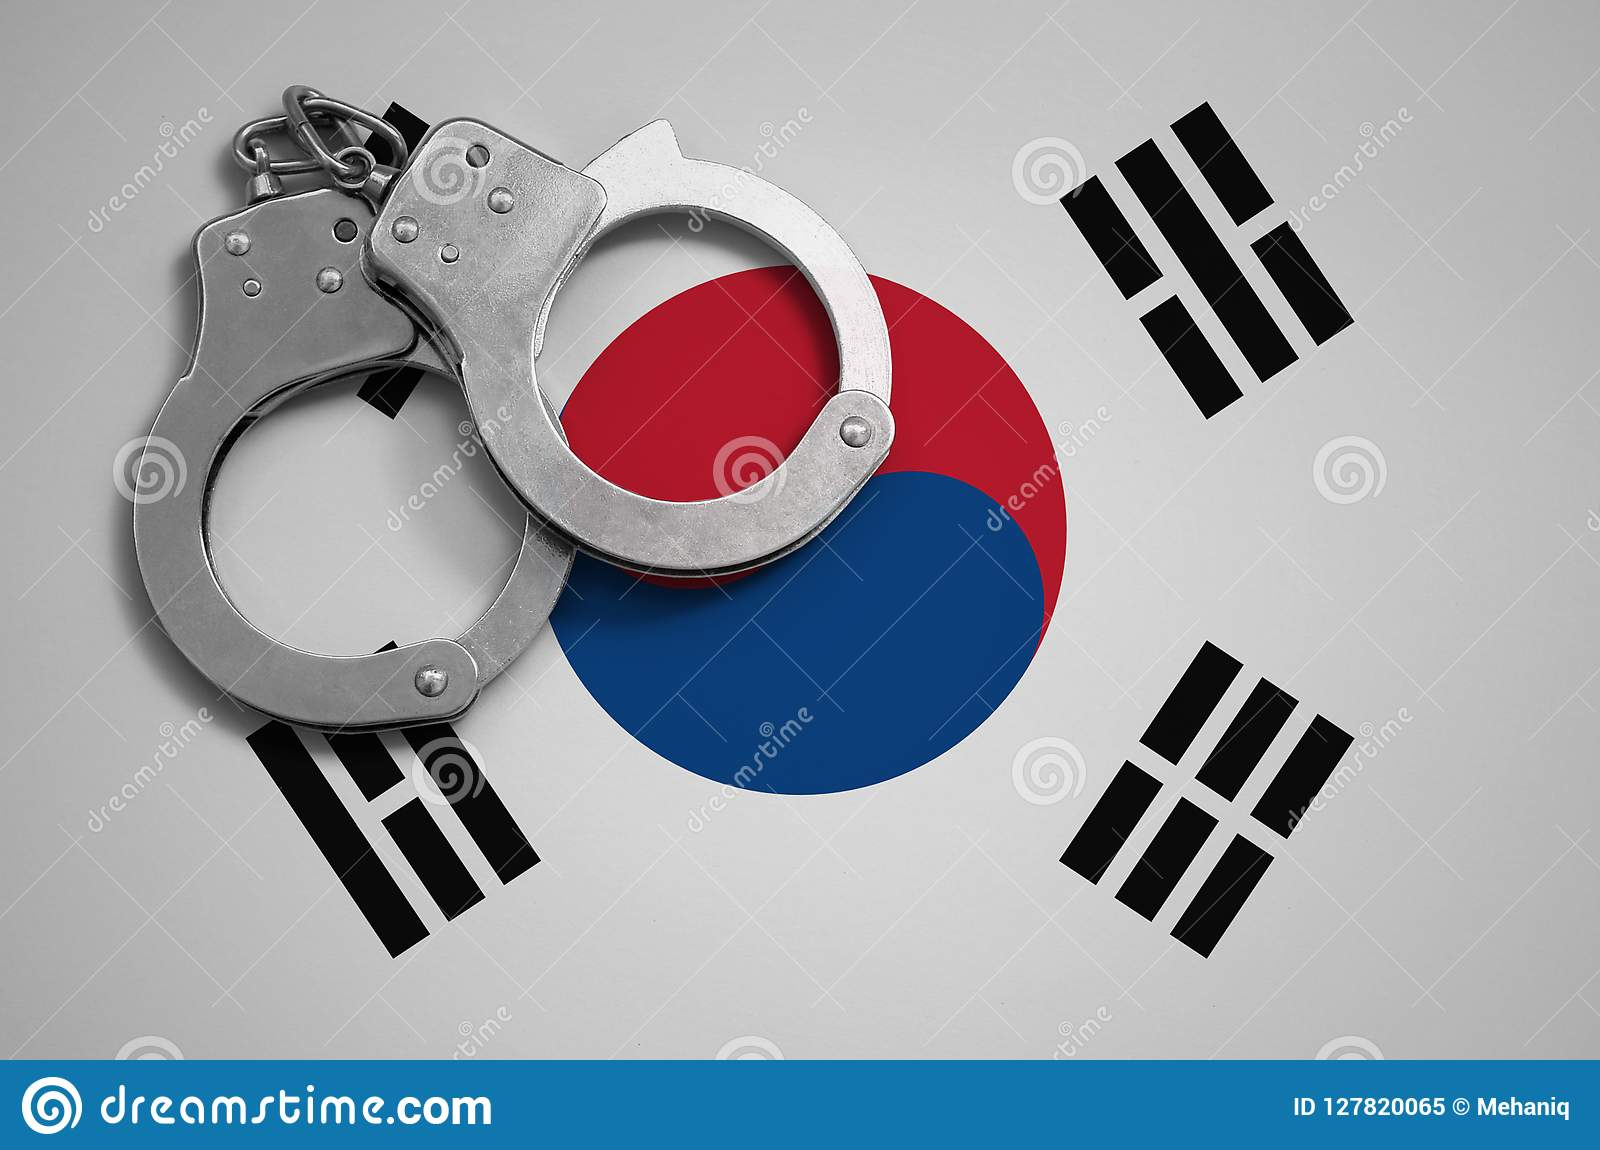 South Korea flag and police handcuffs. The concept of crime and offenses in the country